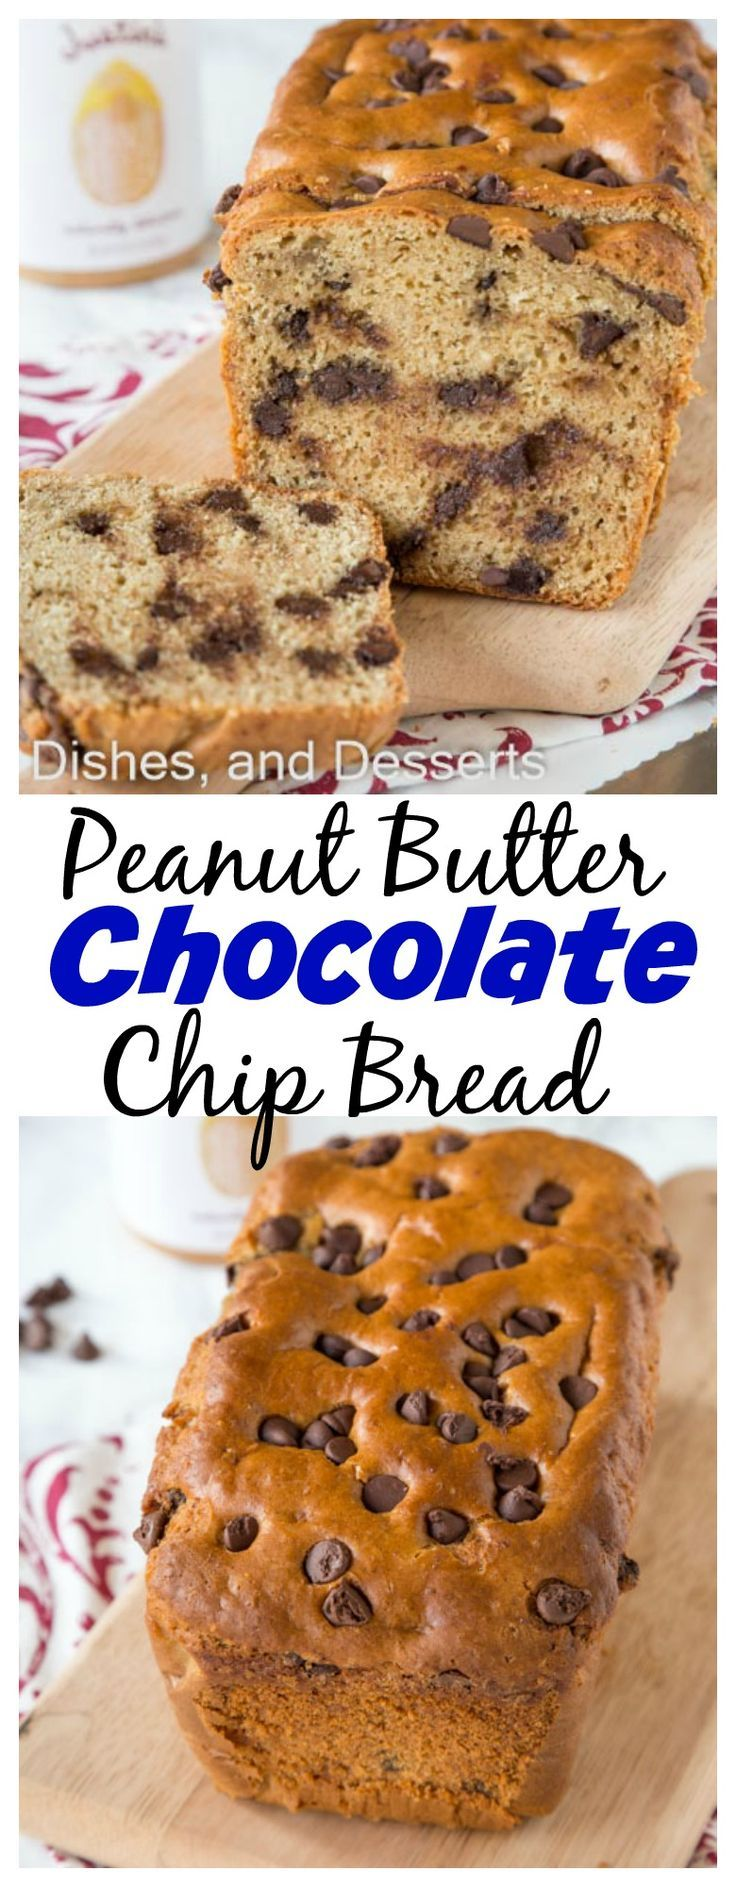 Peanut Butter Chocolate Chip Bread – a peanut butter quick bread full of chocolate chips! A great snack, breakfast, or even dessert.